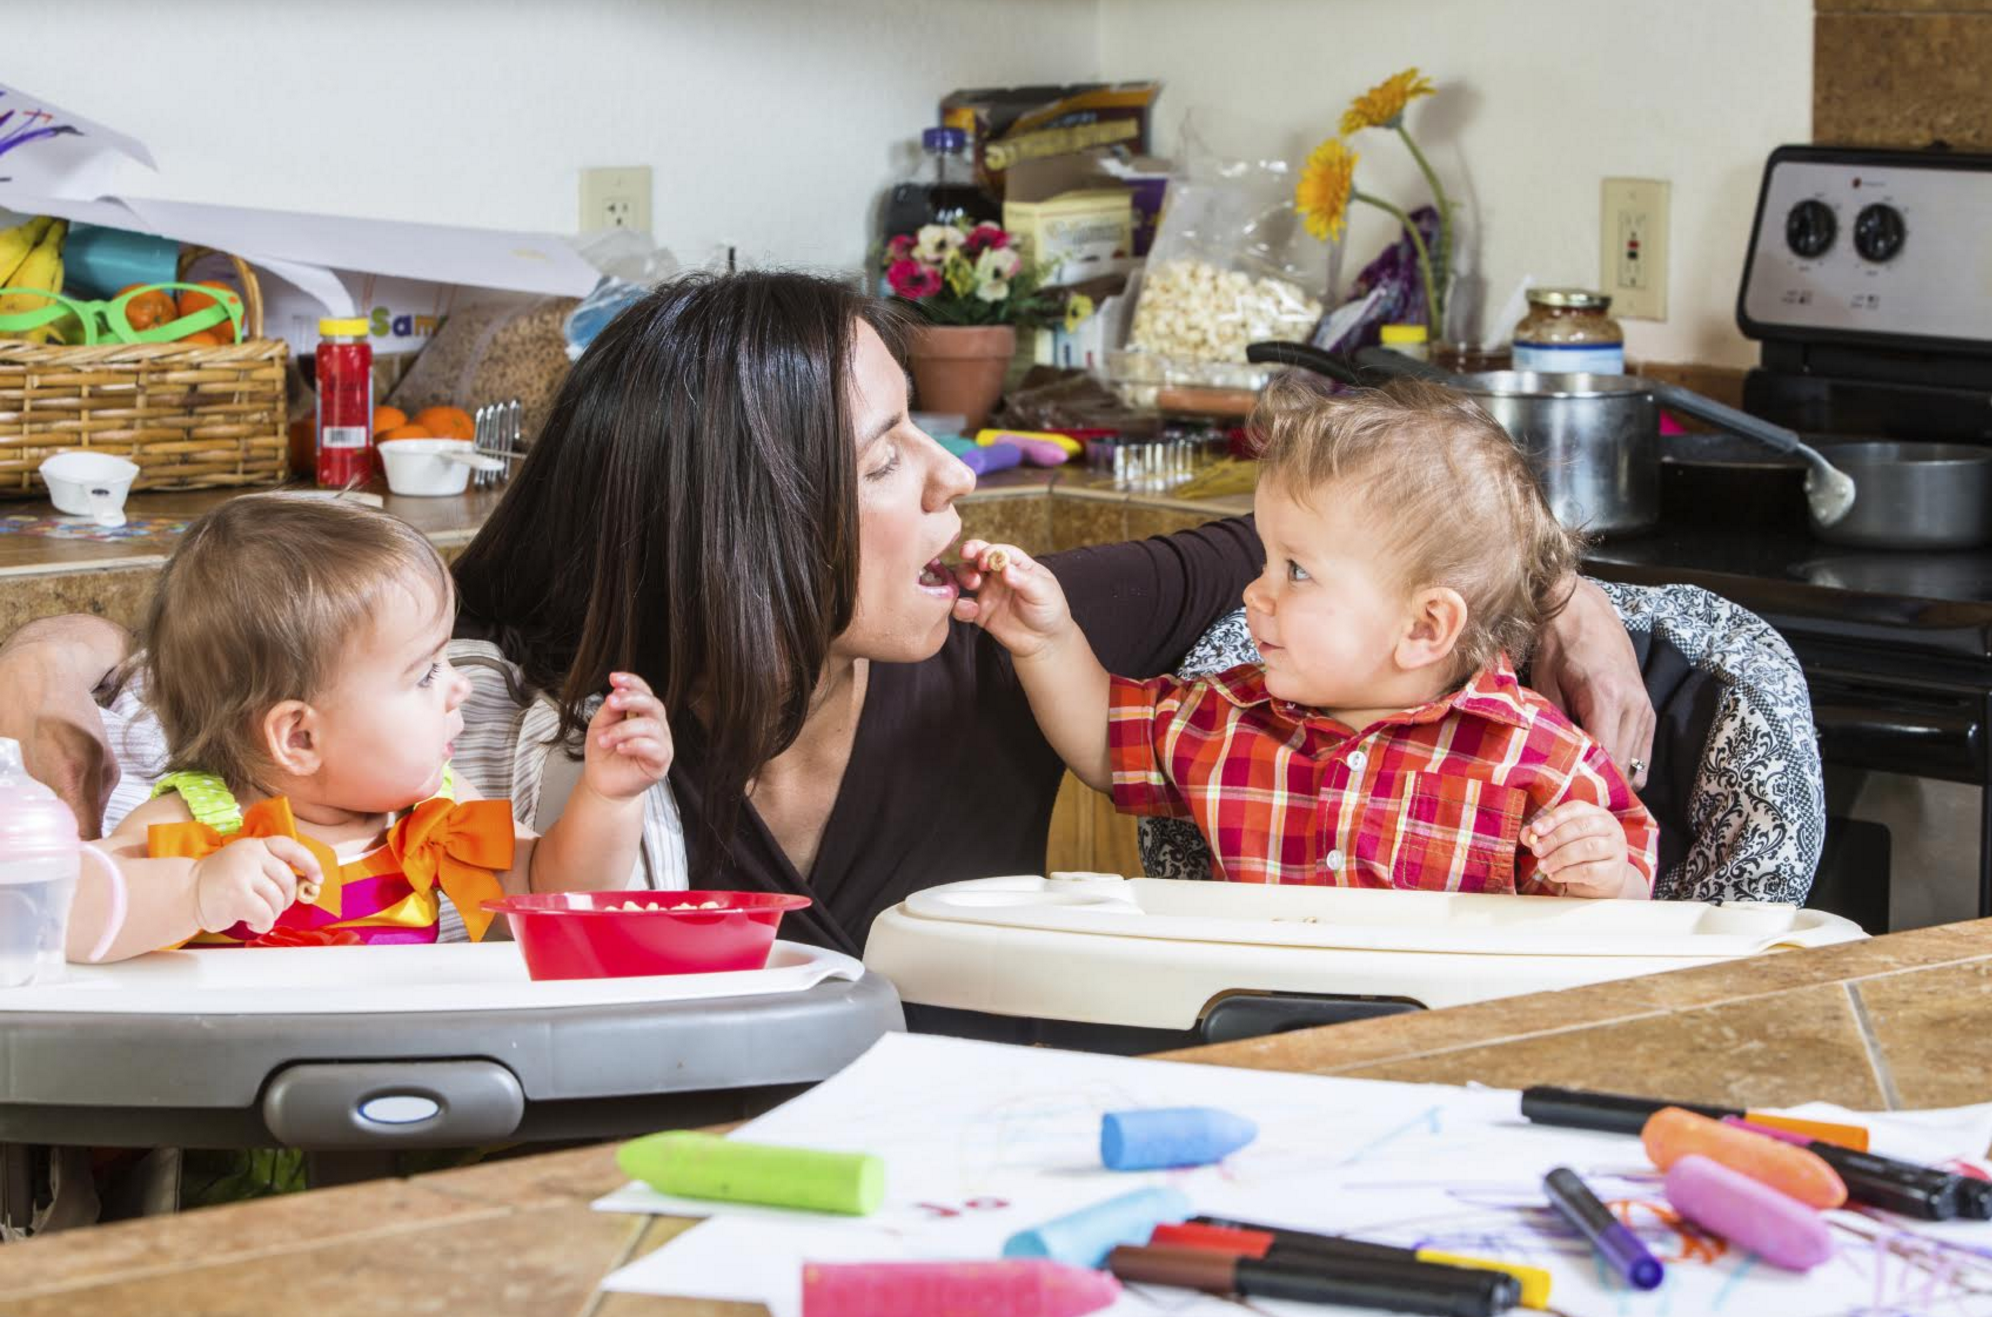 Mommy Confessions: Living The #MomLife